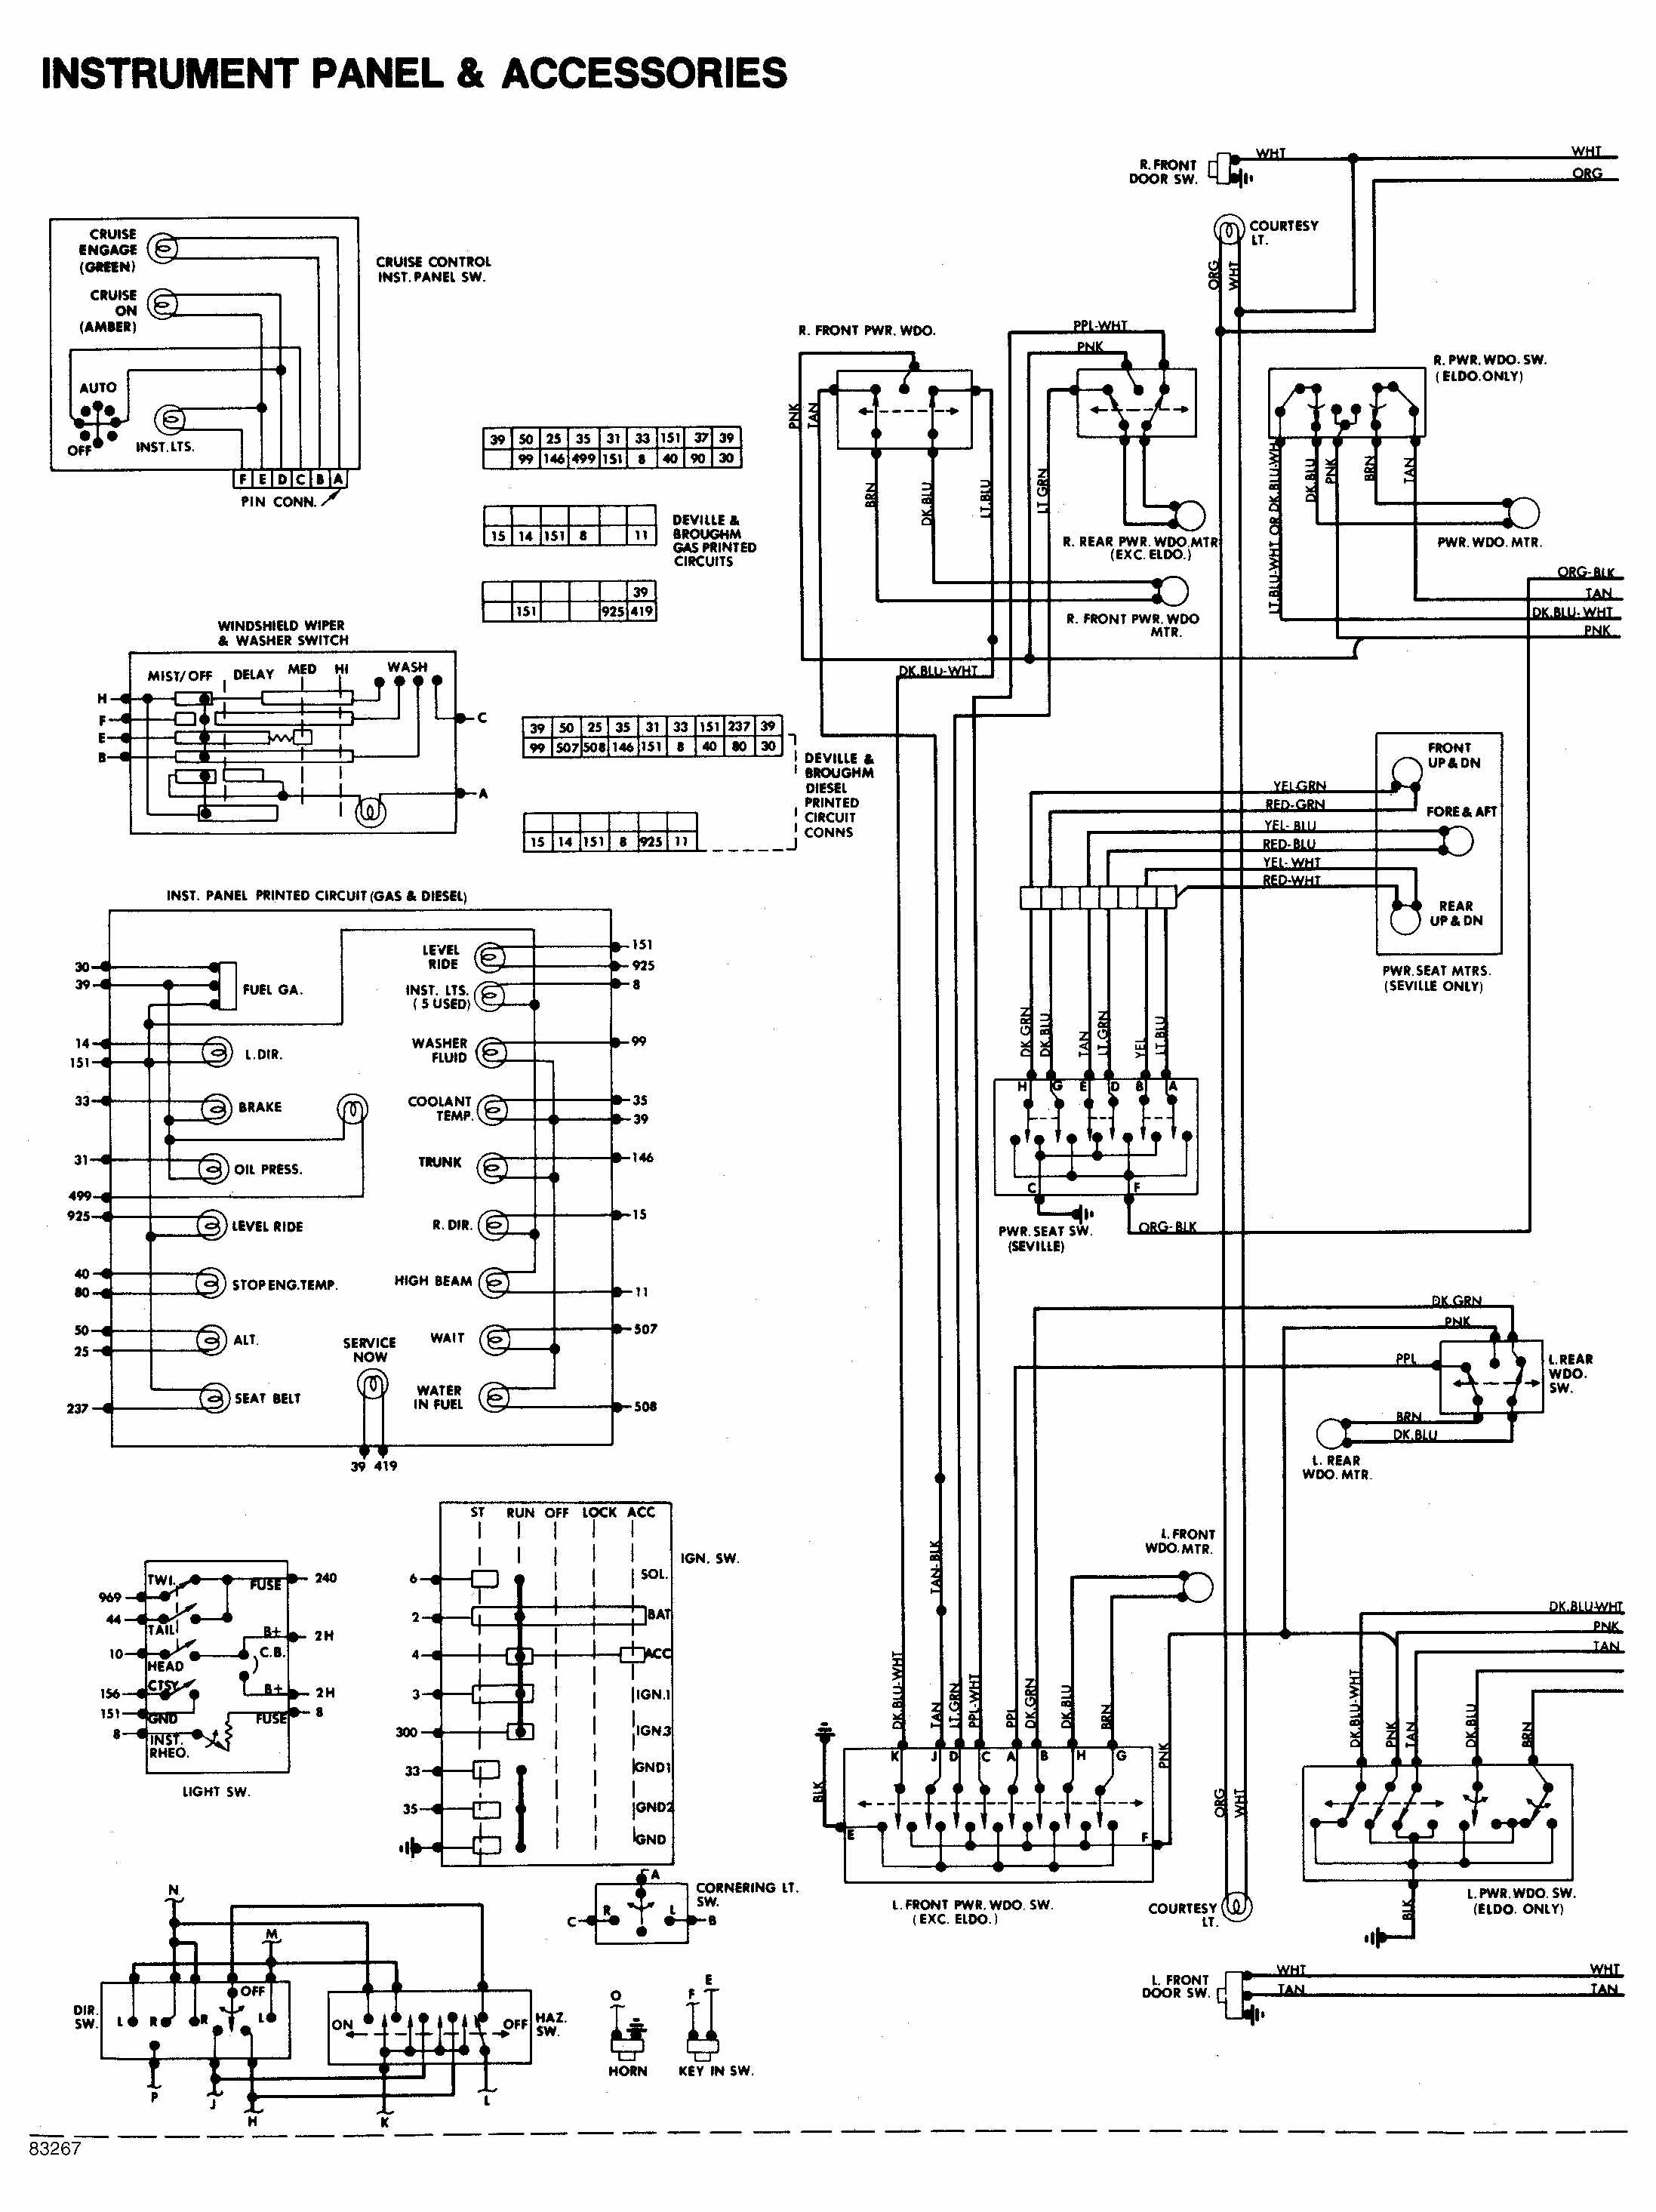 1991 cadillac wiring diagram wiring diagram for light switch u2022 rh prestonfarmmotors co 2003 cadillac radio wiring diagram 2003 cadillac escalade wiring diagram